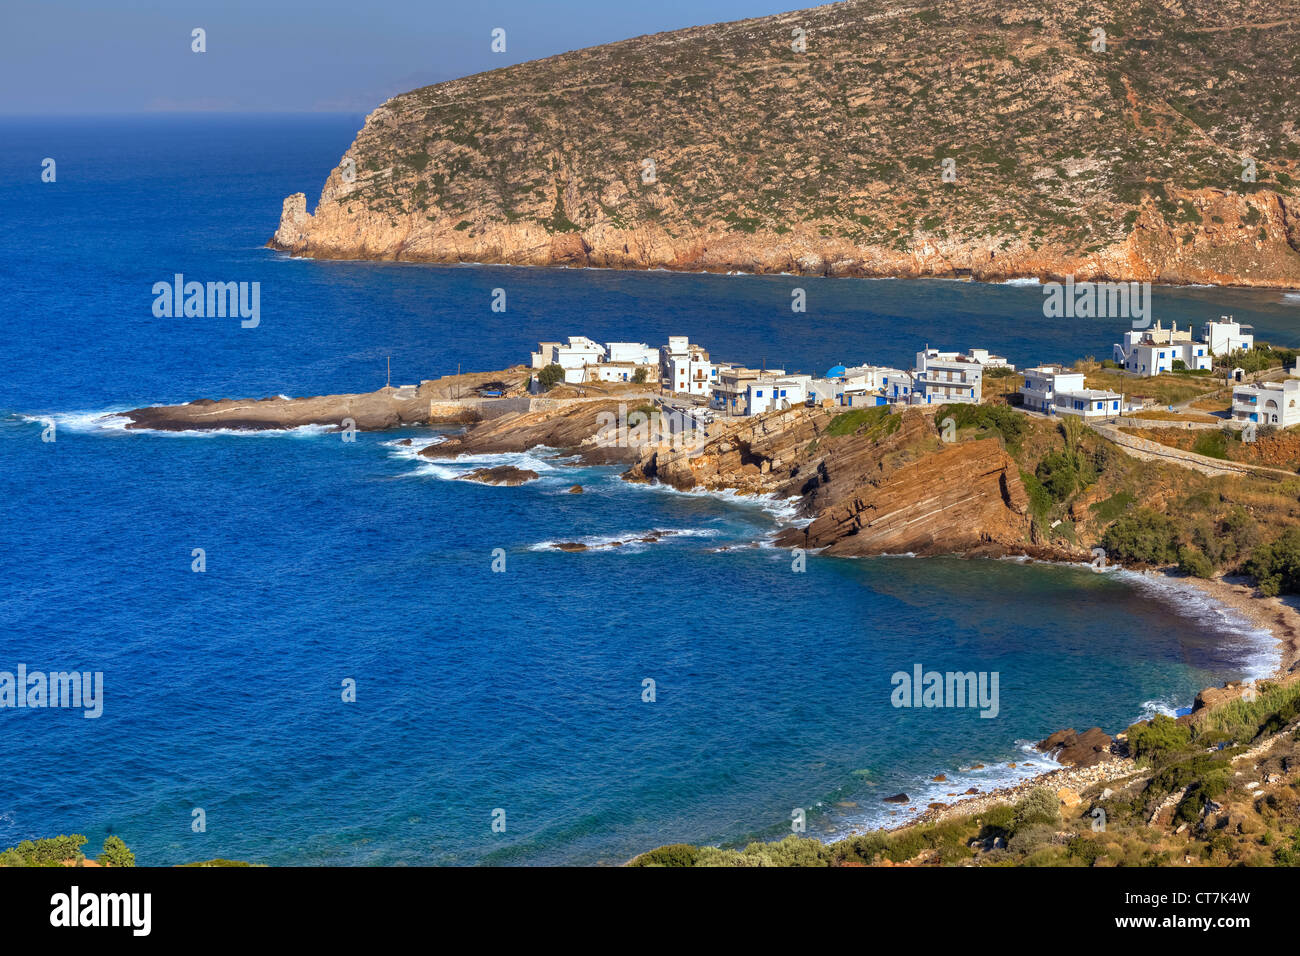 Fishing village, Apollonas, Naxos, Greece - Stock Image